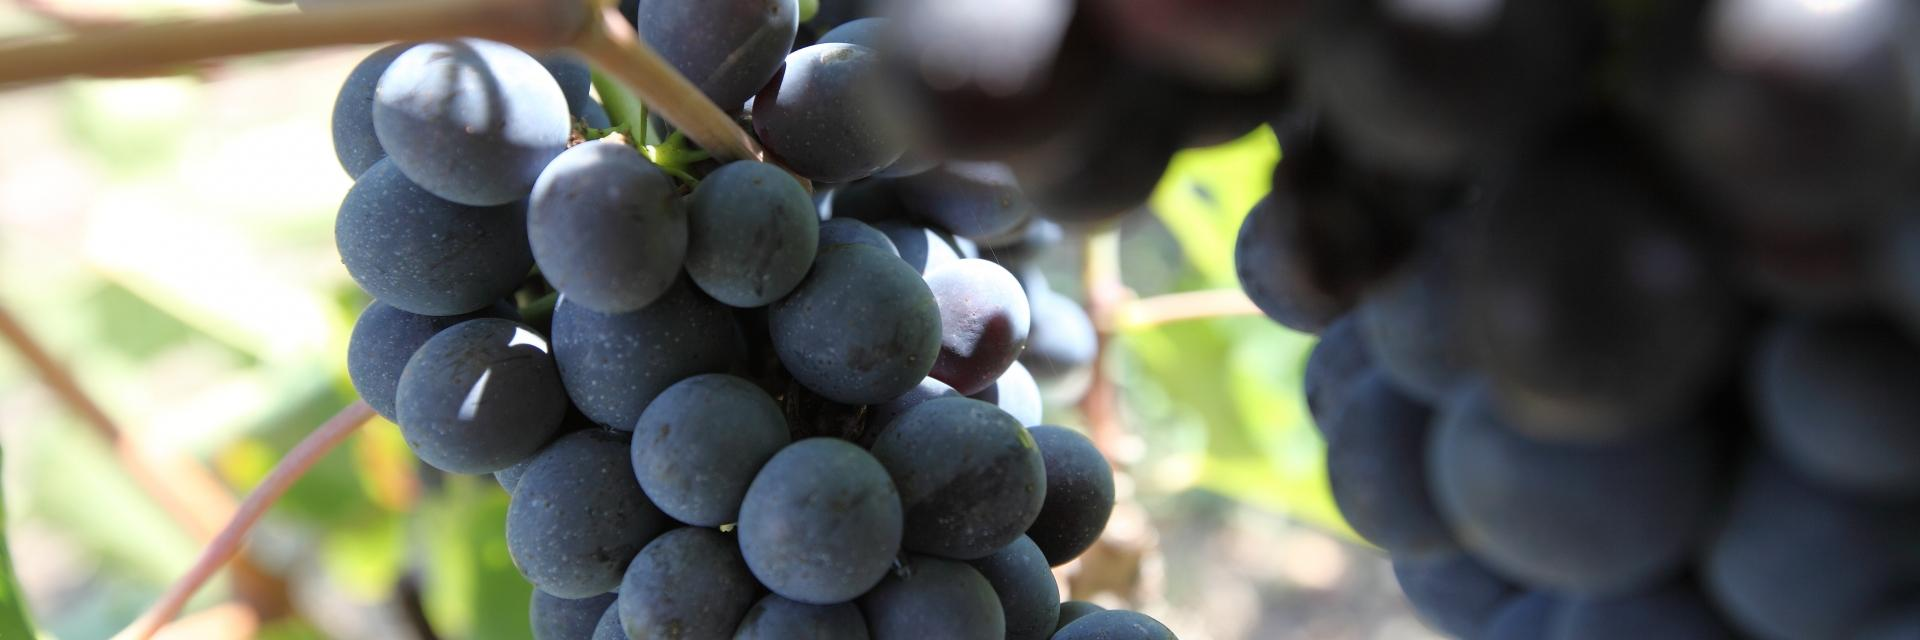 Umbrian grapes